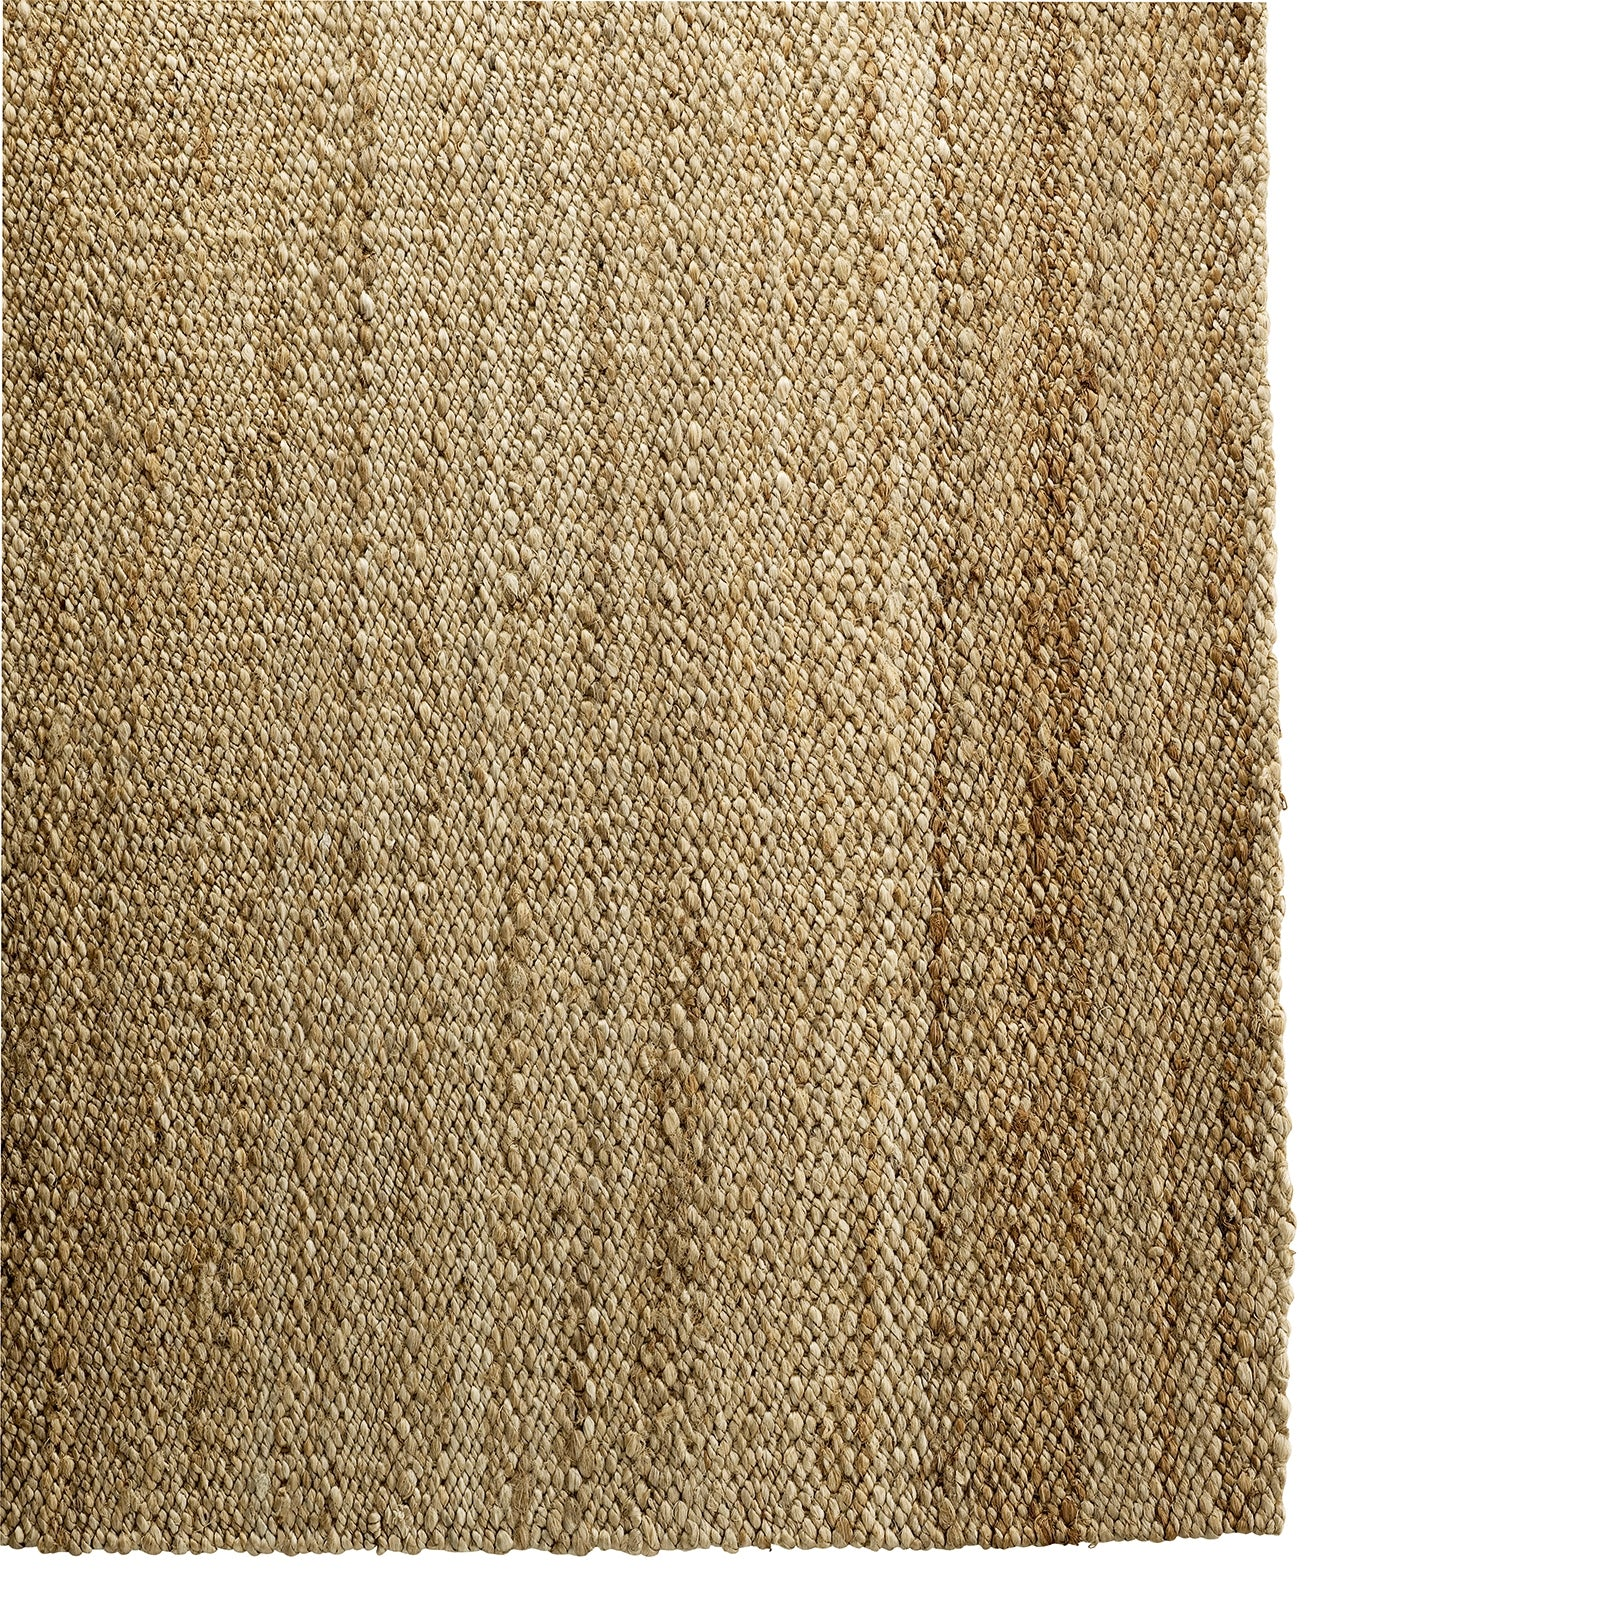 Design Vintage Natural Hemp Jute Rug Tine K Home Jute Rug